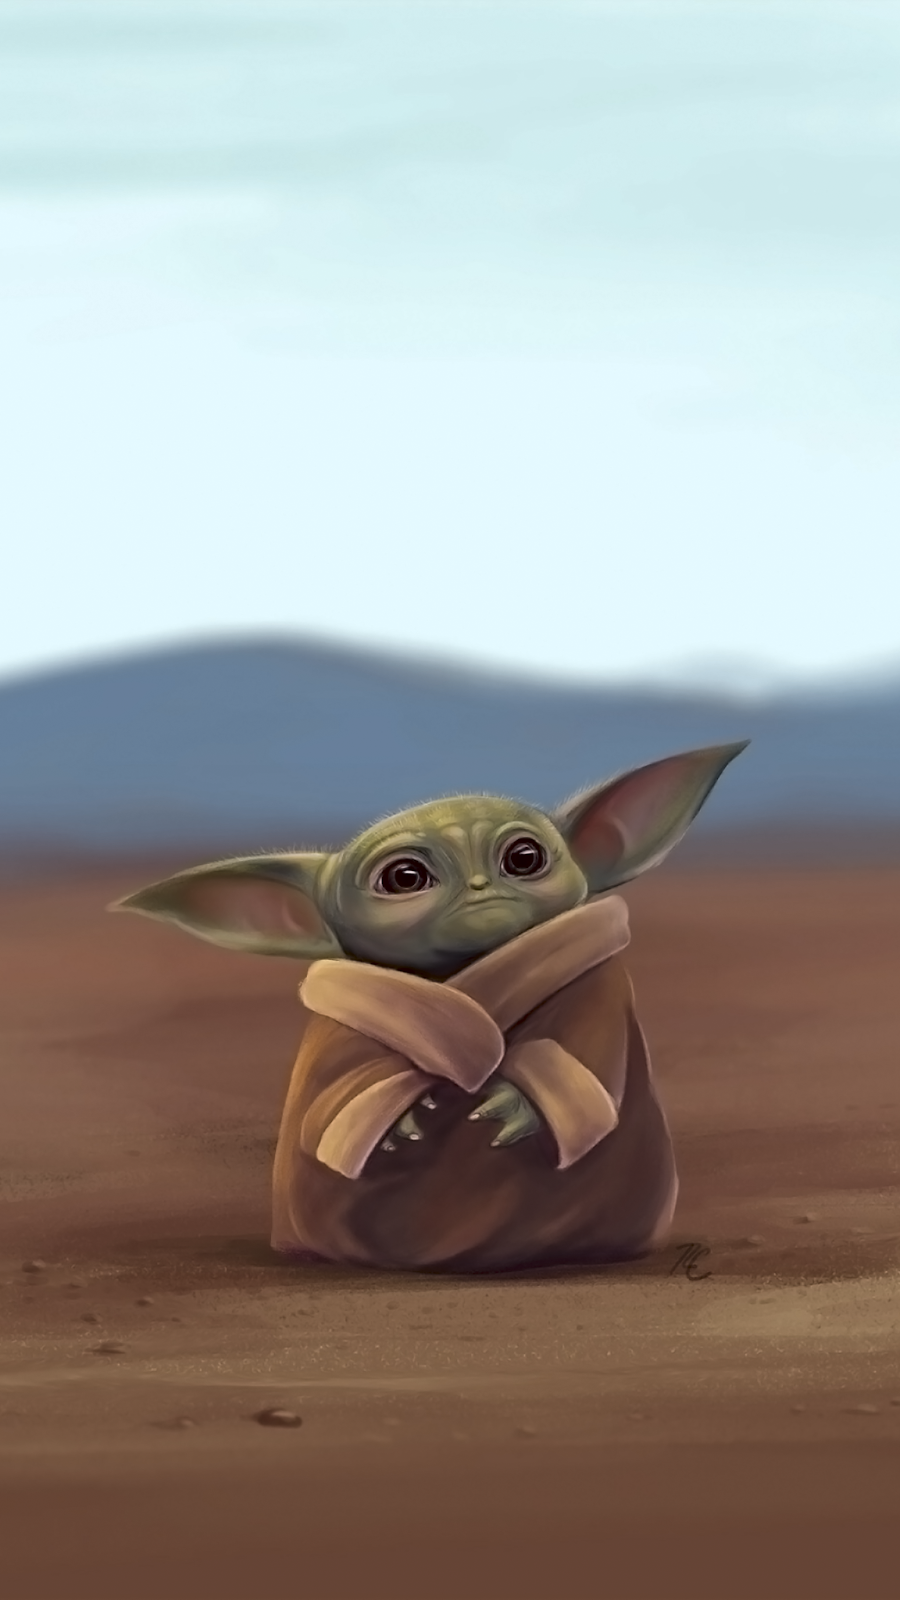 The Child Baby Yoda Phone Wallpaper Collection Cool Wallpapers Heroscreen Cc Yoda Wallpaper Yoda Art Star Wars Wallpaper